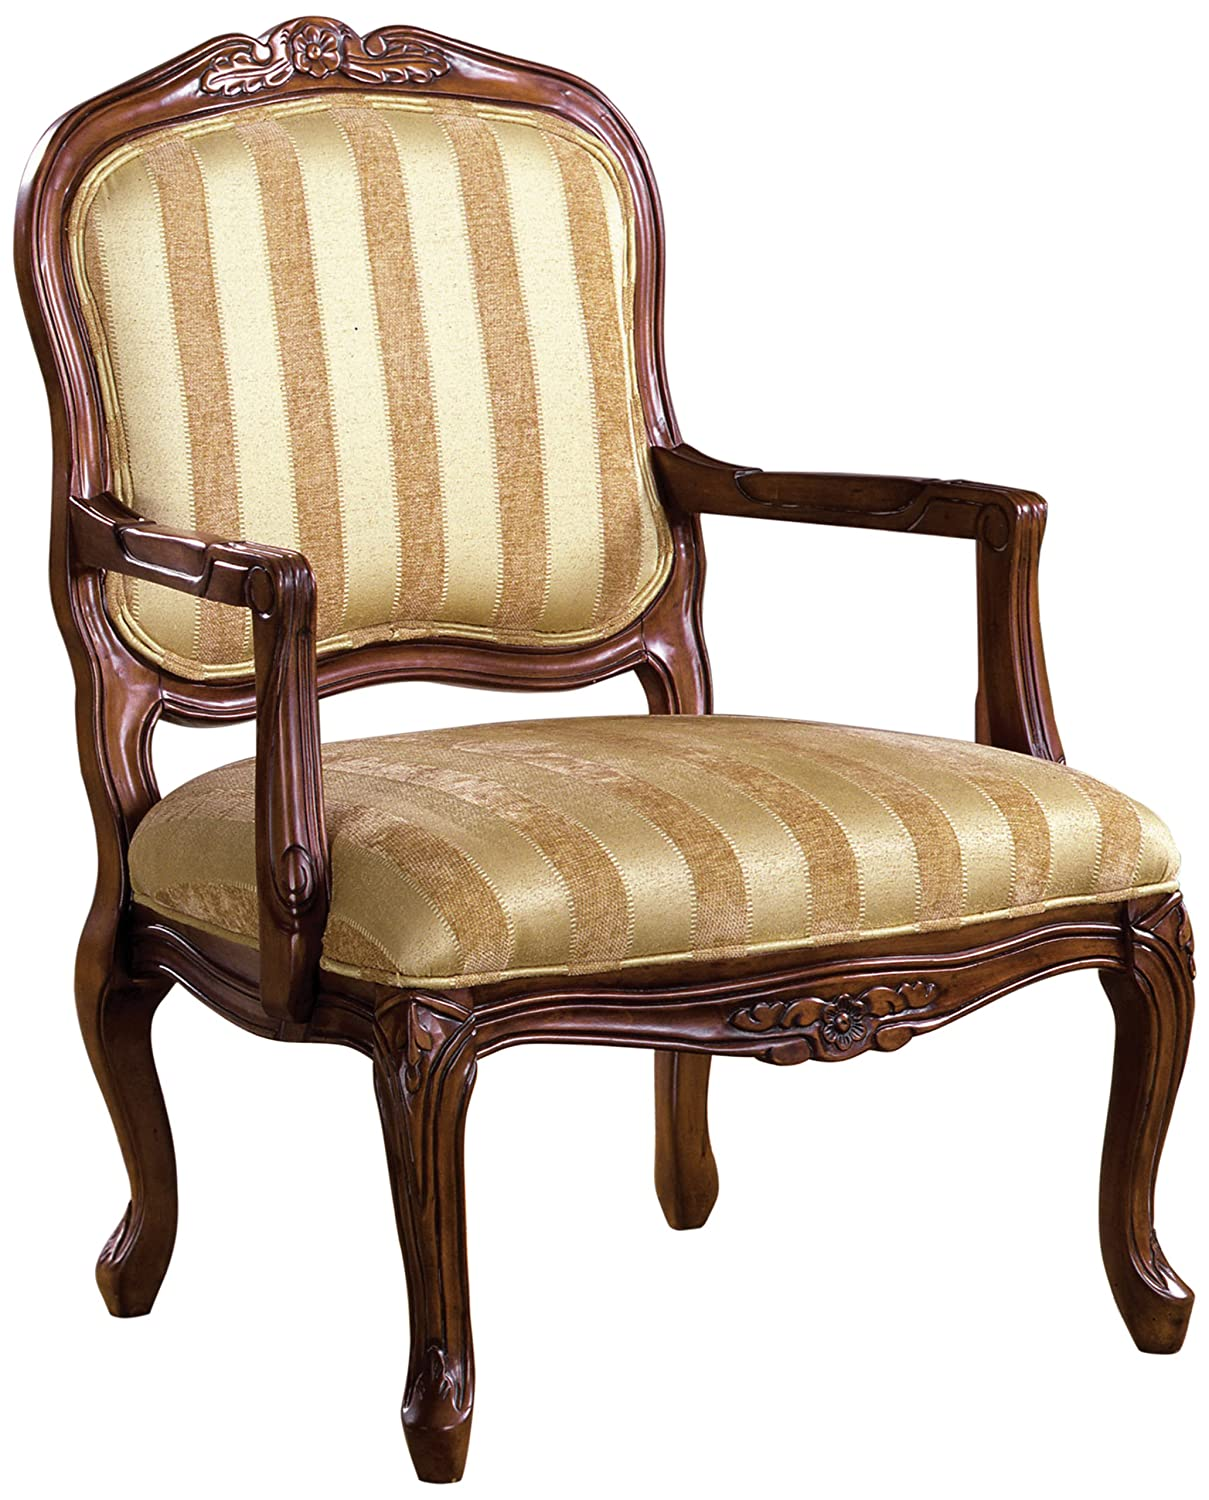 Antique sitting chairs antique furniture for Sitting chairs